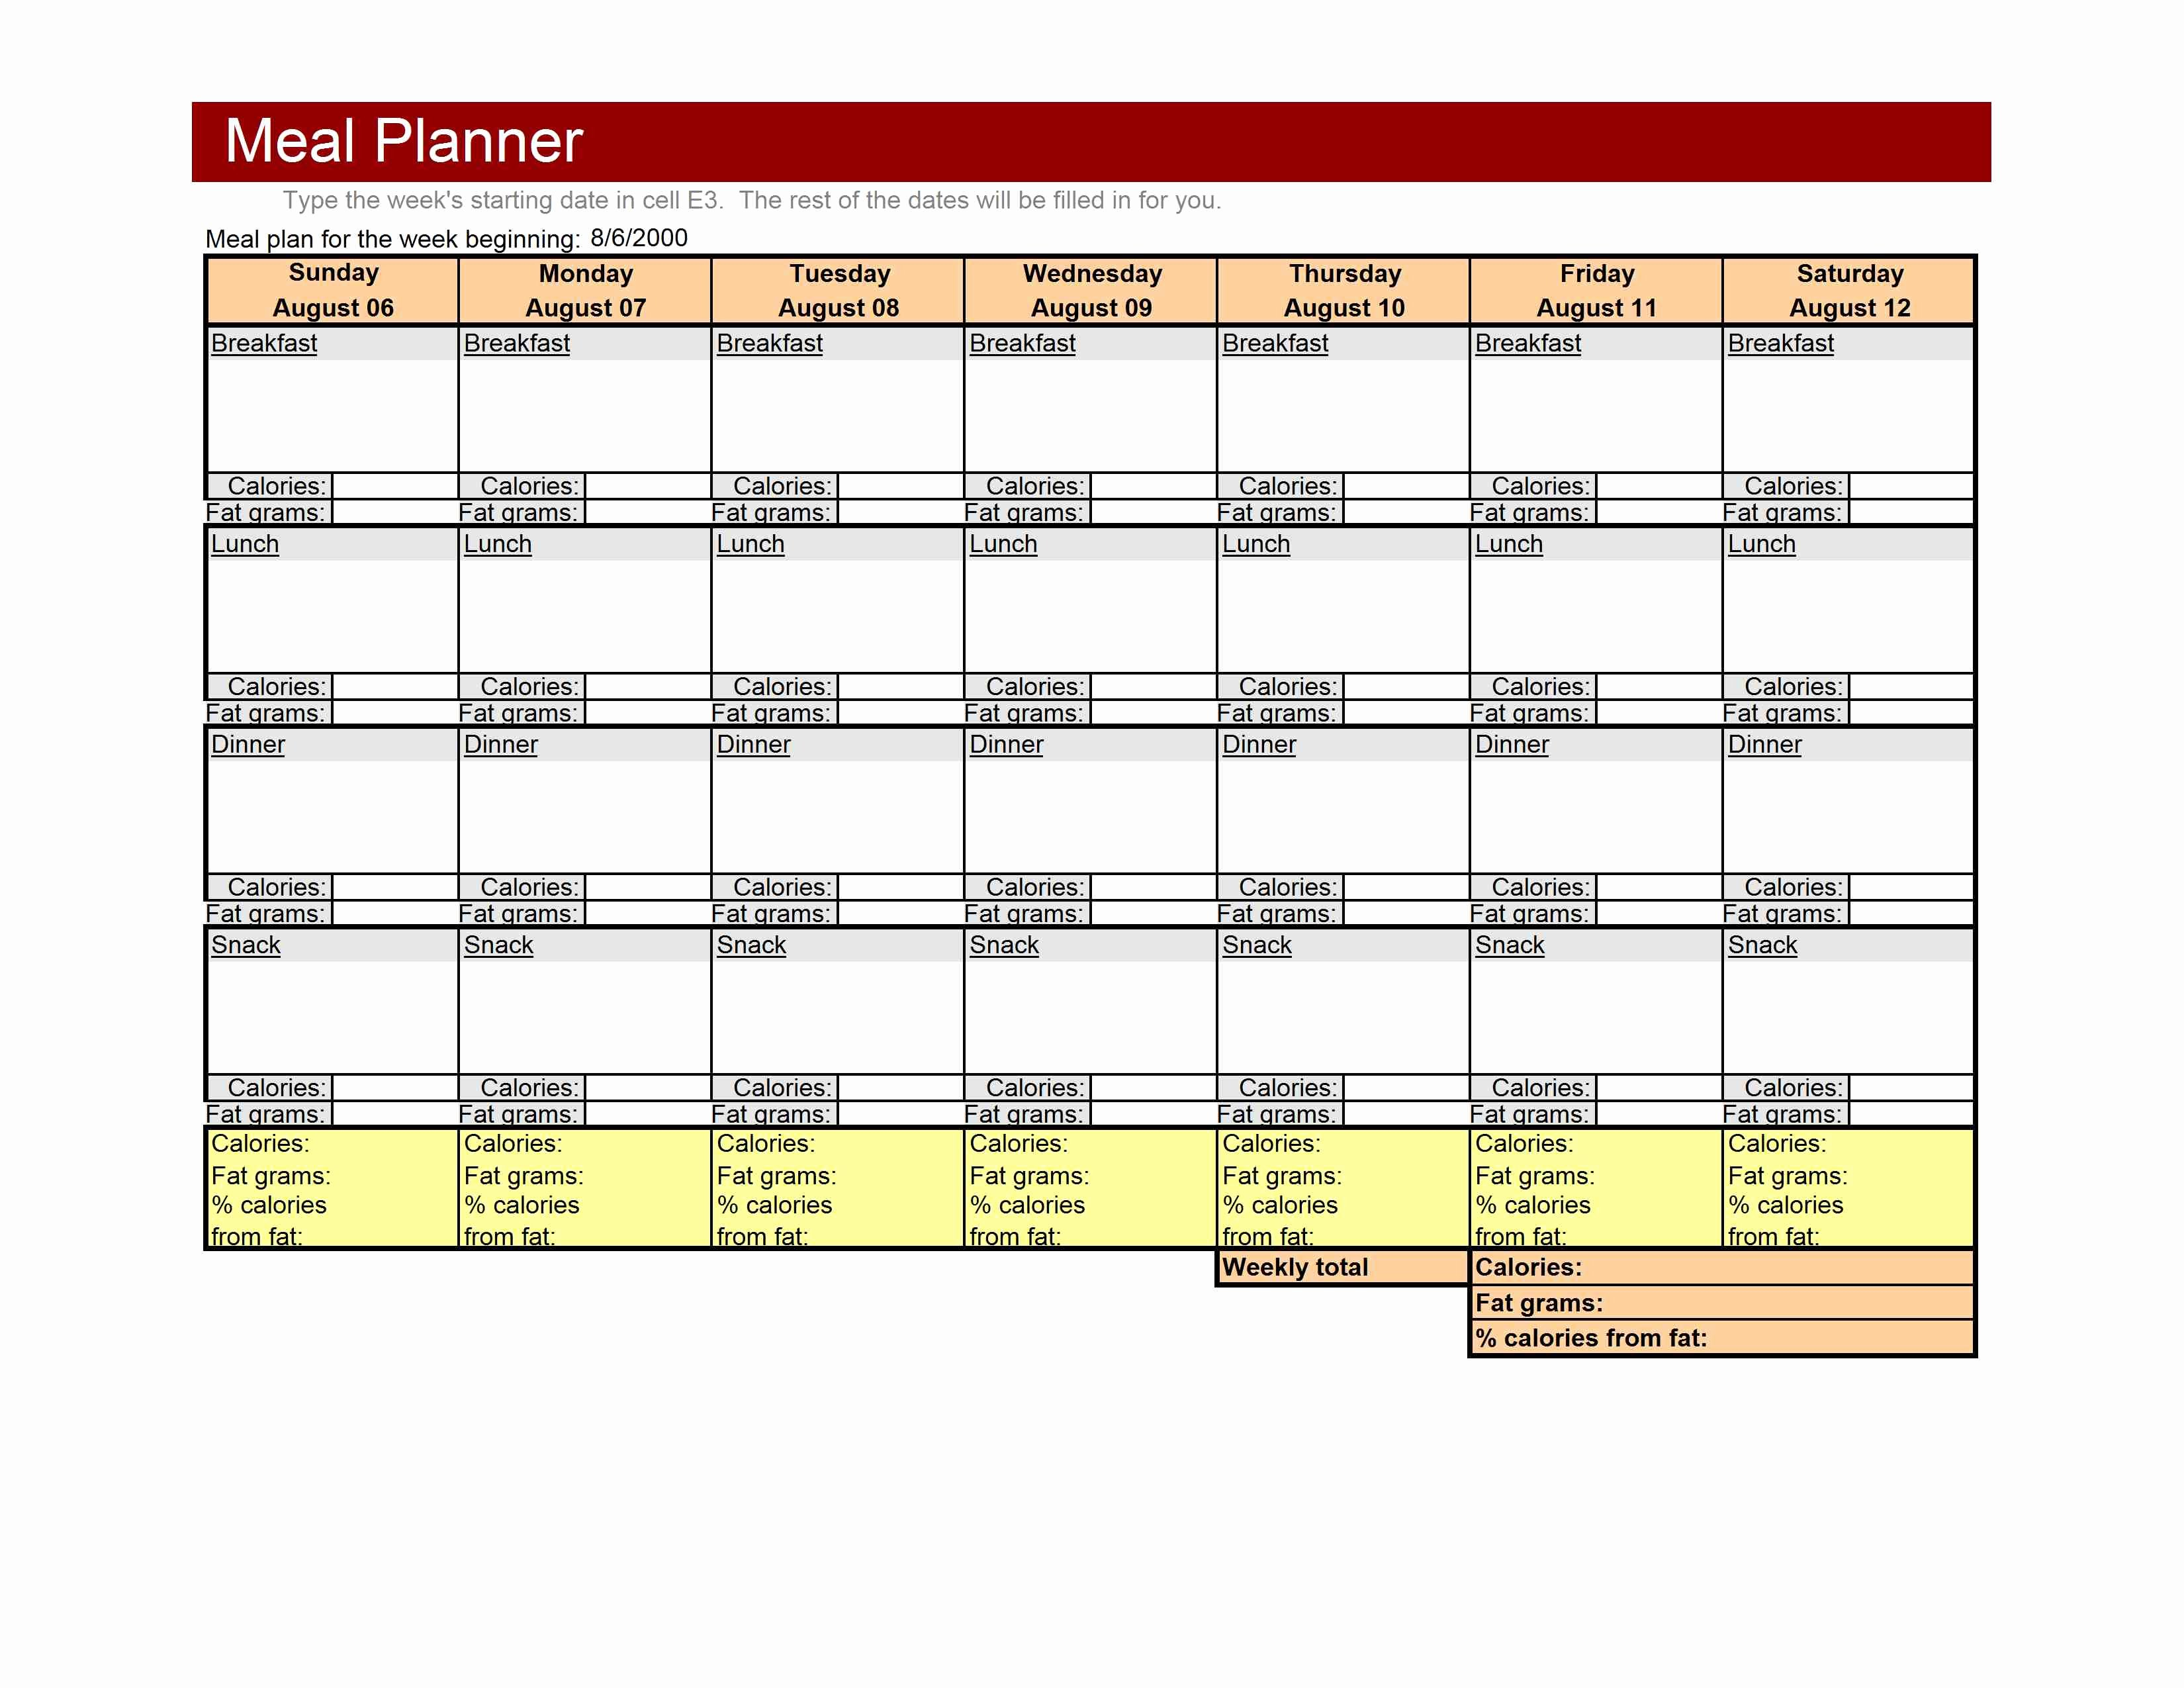 Meal Plan Spreadsheet Template Lovely Family Archives Free Microsoft Excel Templates and